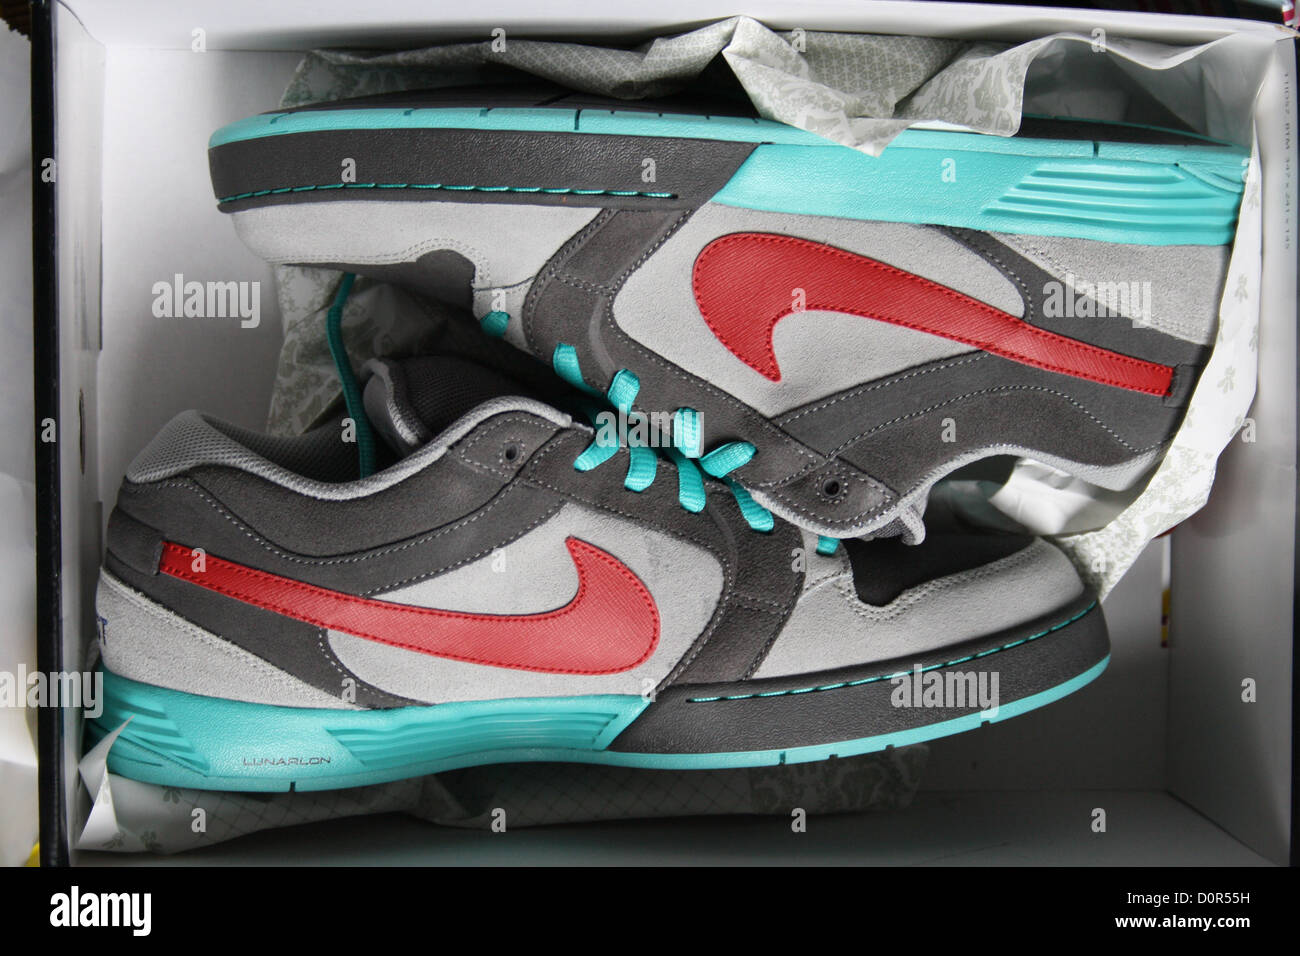 fc863c51fc9b9 Nike Trainers Sneakers Stock Photos   Nike Trainers Sneakers Stock ...